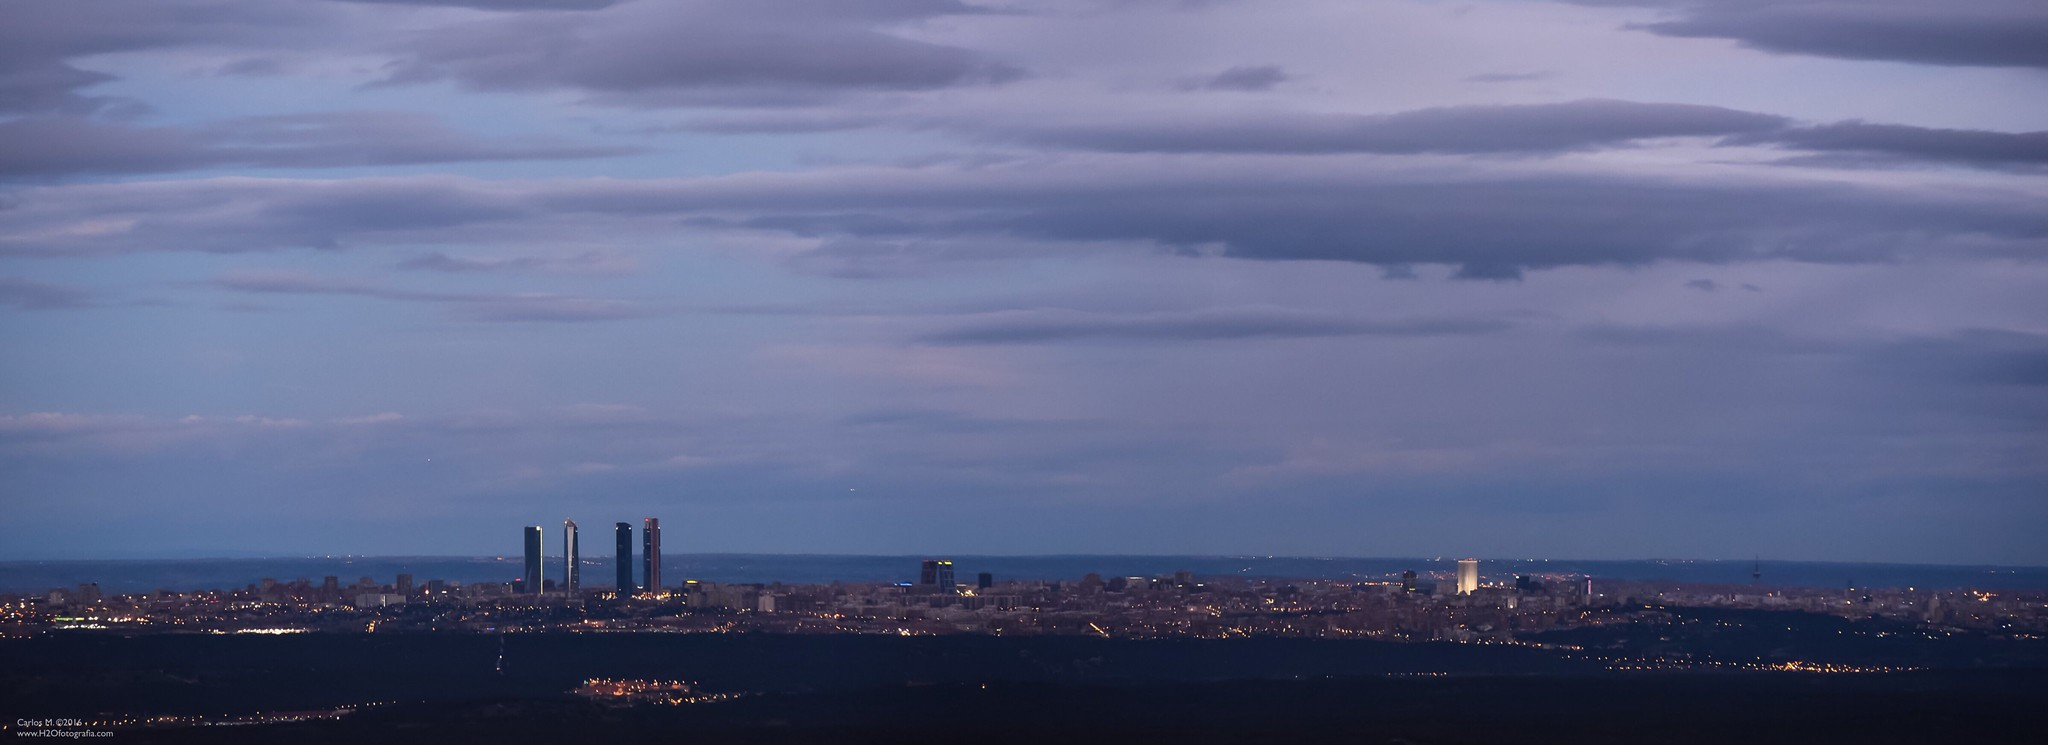 Madrid skyline nightview